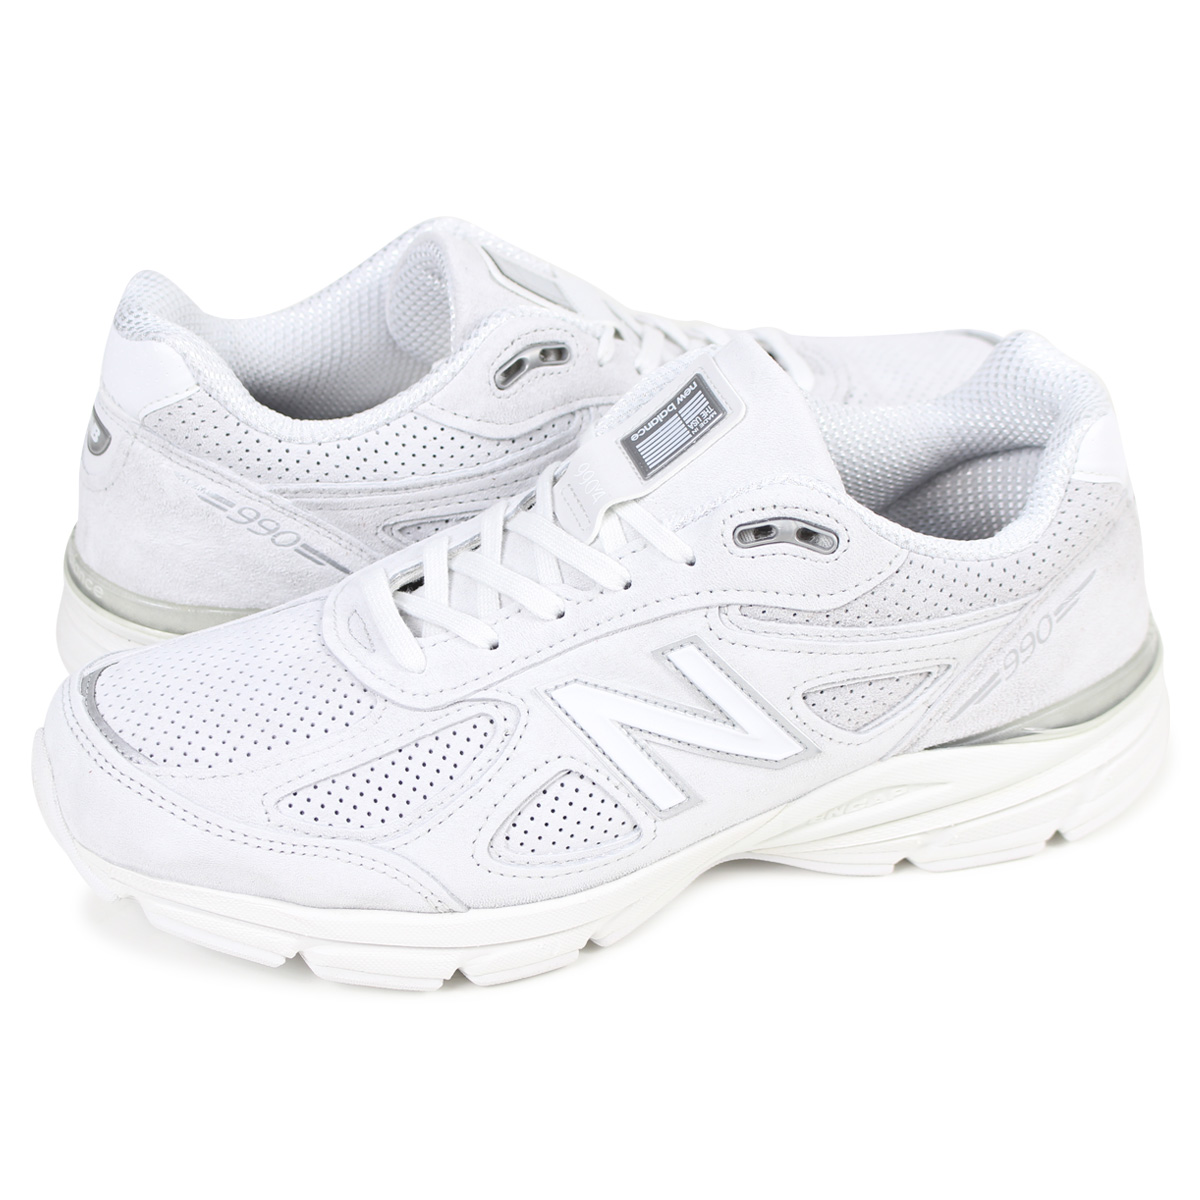 86a87180d79 Whats up Sports: new balance 990뉴발란스 스니커 맨즈 D와이즈 MADE IN ...